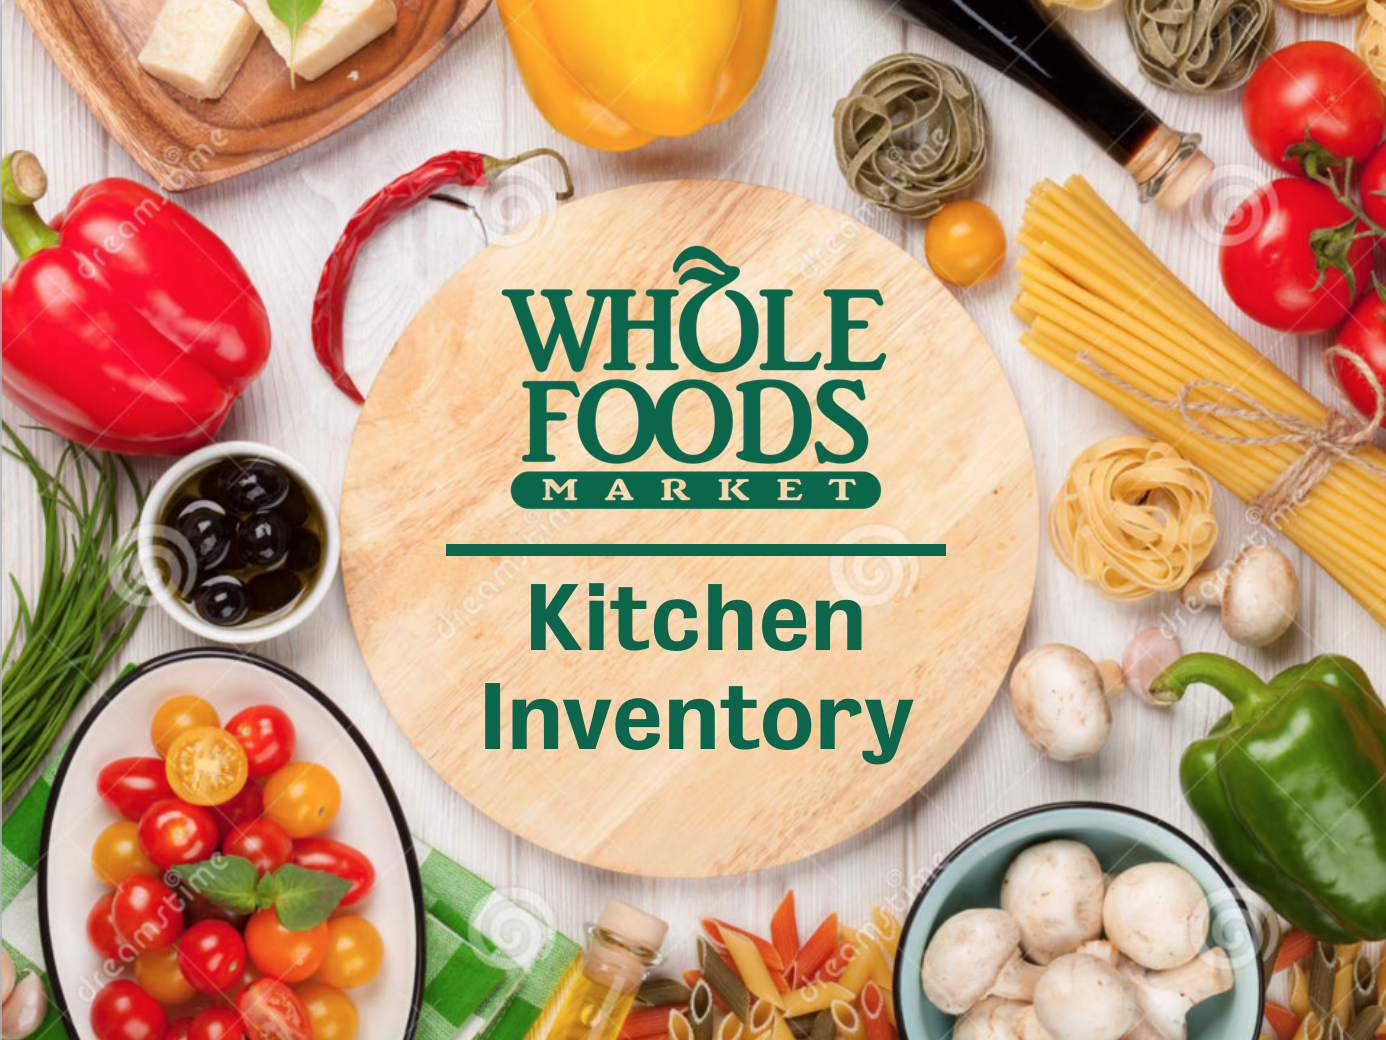 We Wanted To Implement New Feature U201cMy Pantryu201d On The Whole Foods Current  App.